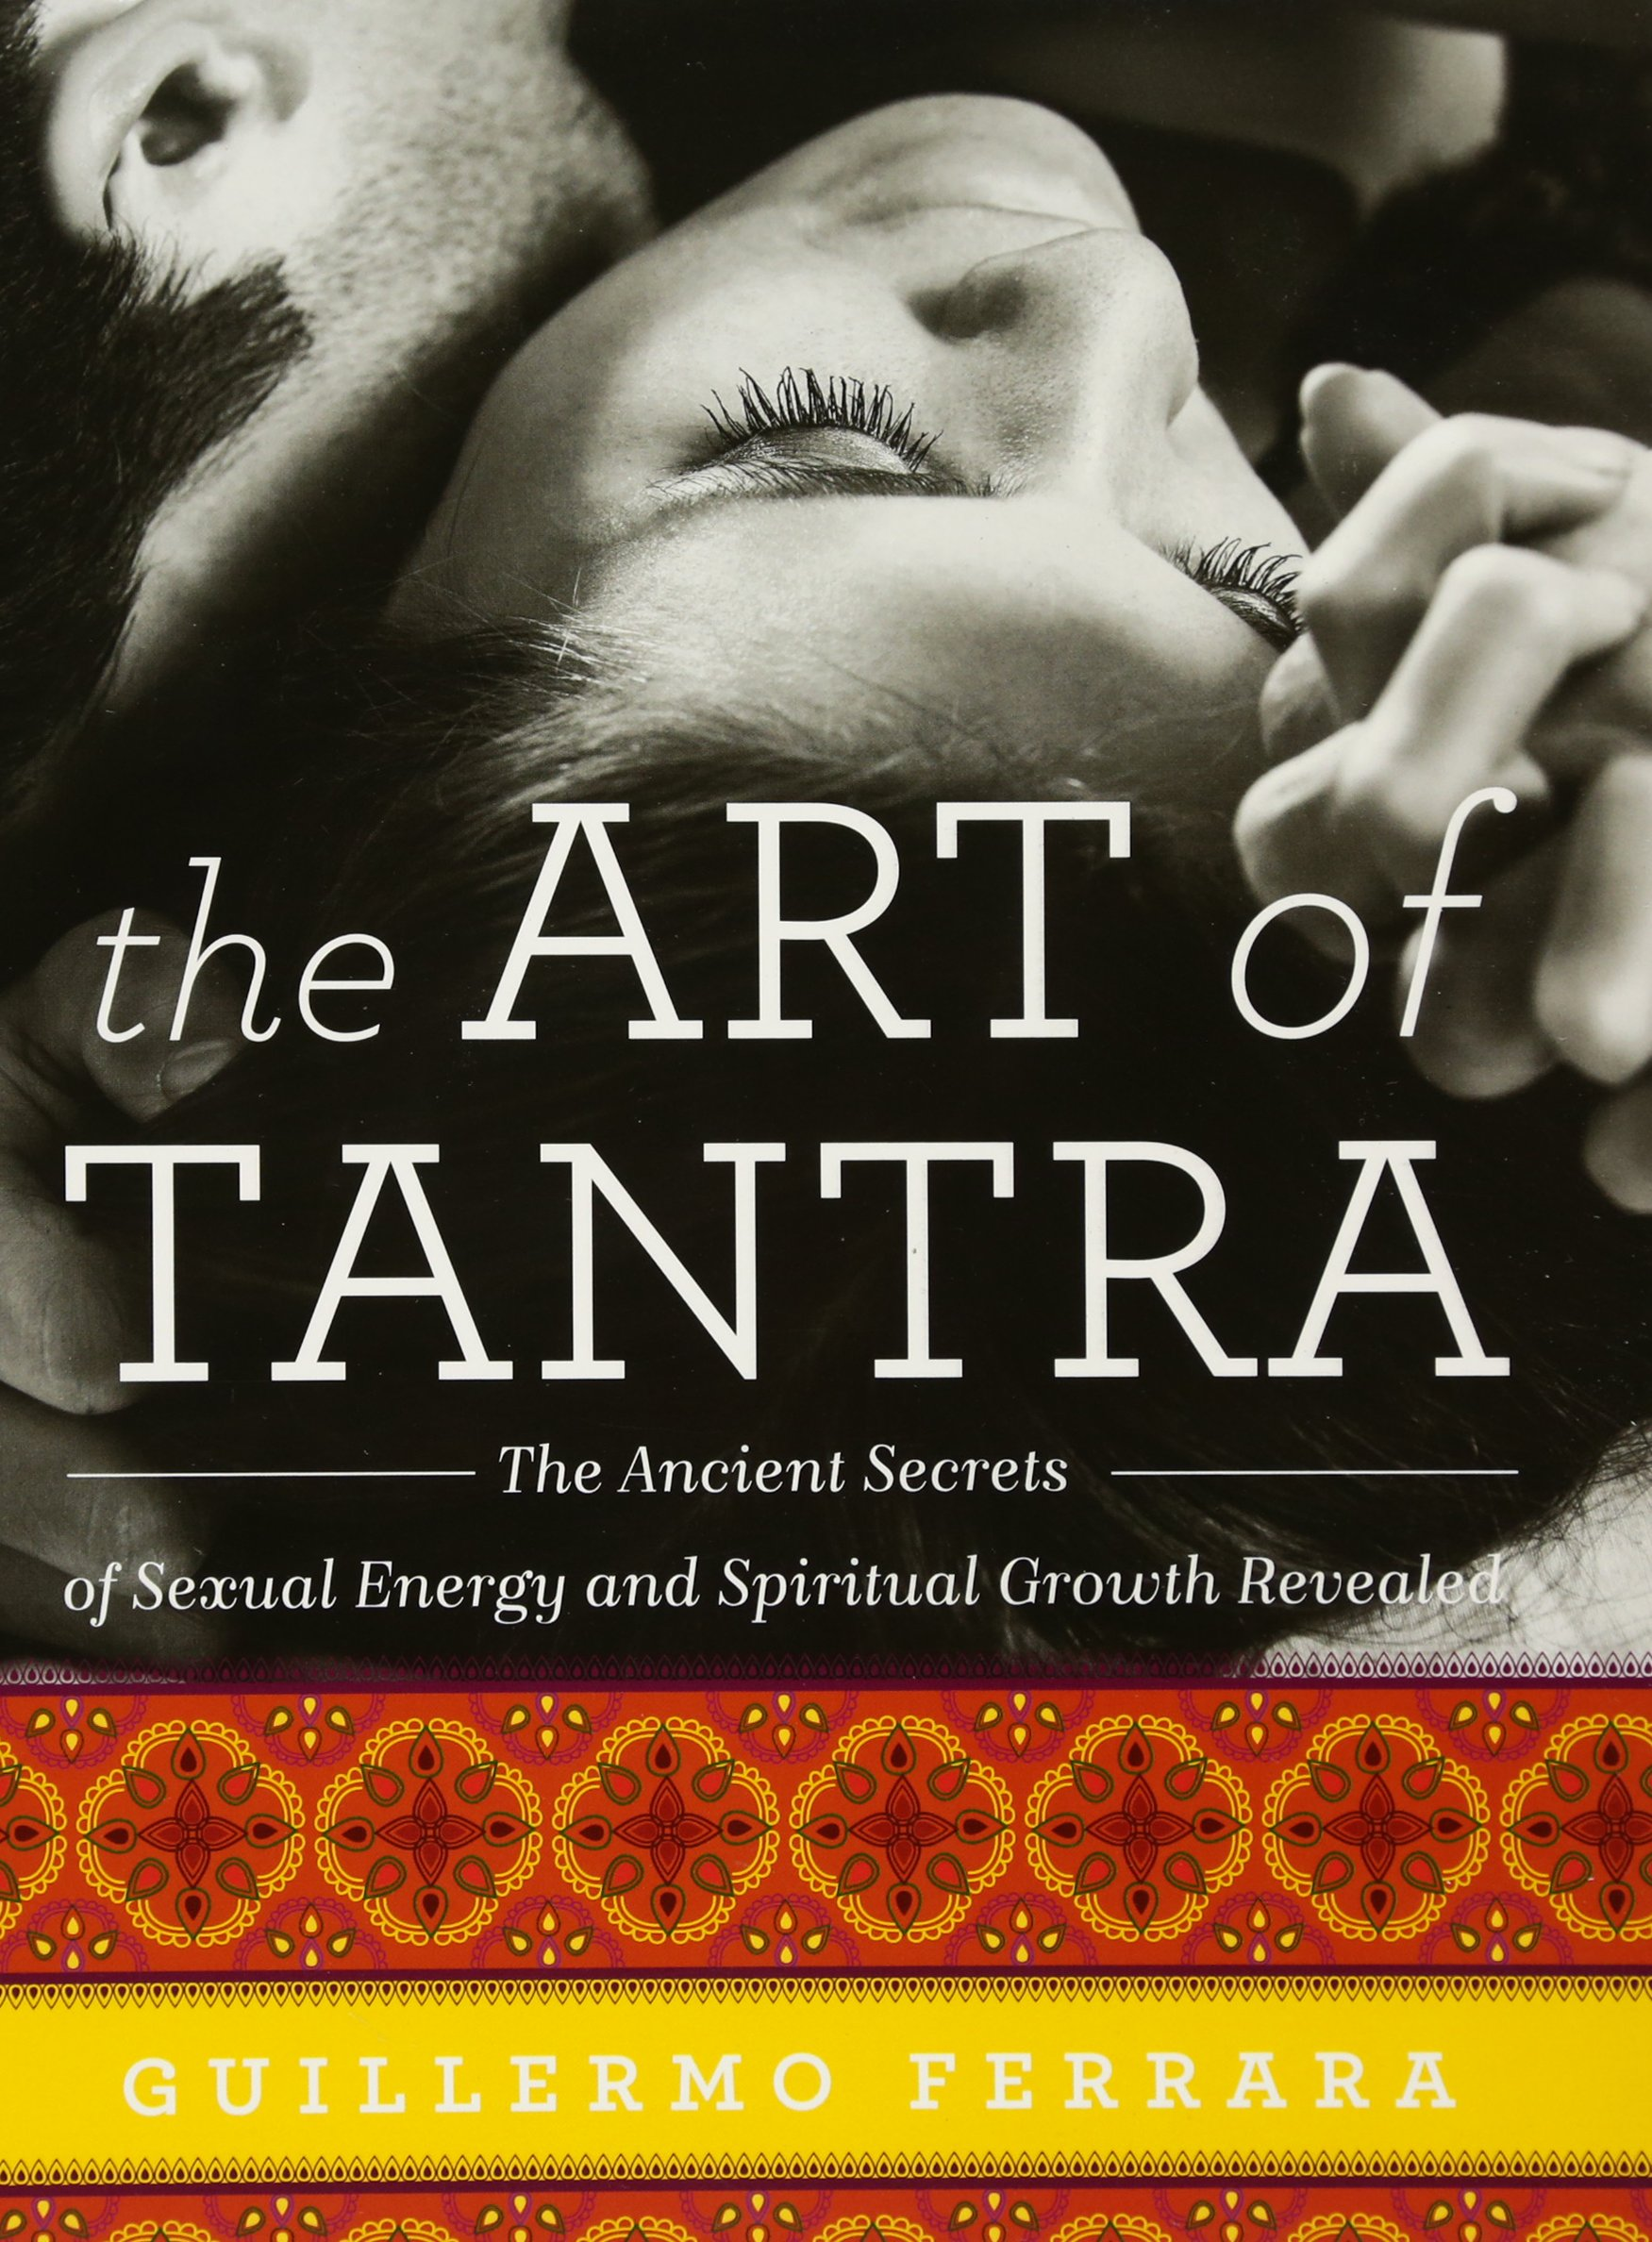 The Art of Tantra: The Ancient Secrets of Sexual Energy and Spiritual Growth Revealed ebook